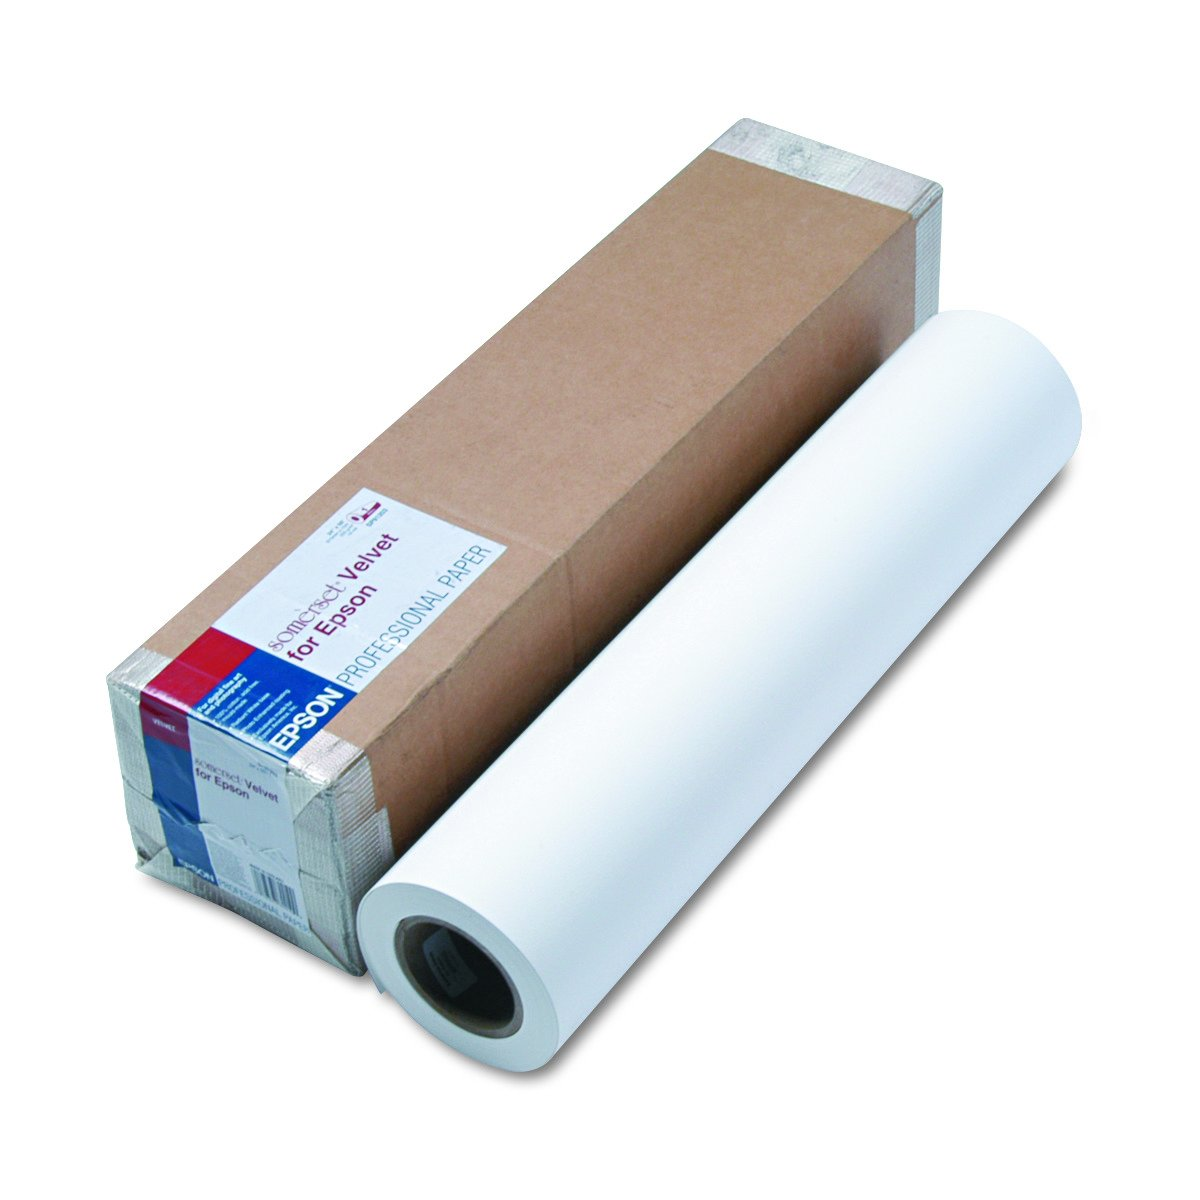 Epson SP91203 Somerset Velvet Paper Roll, 255 g, 24'' x 50 ft, White